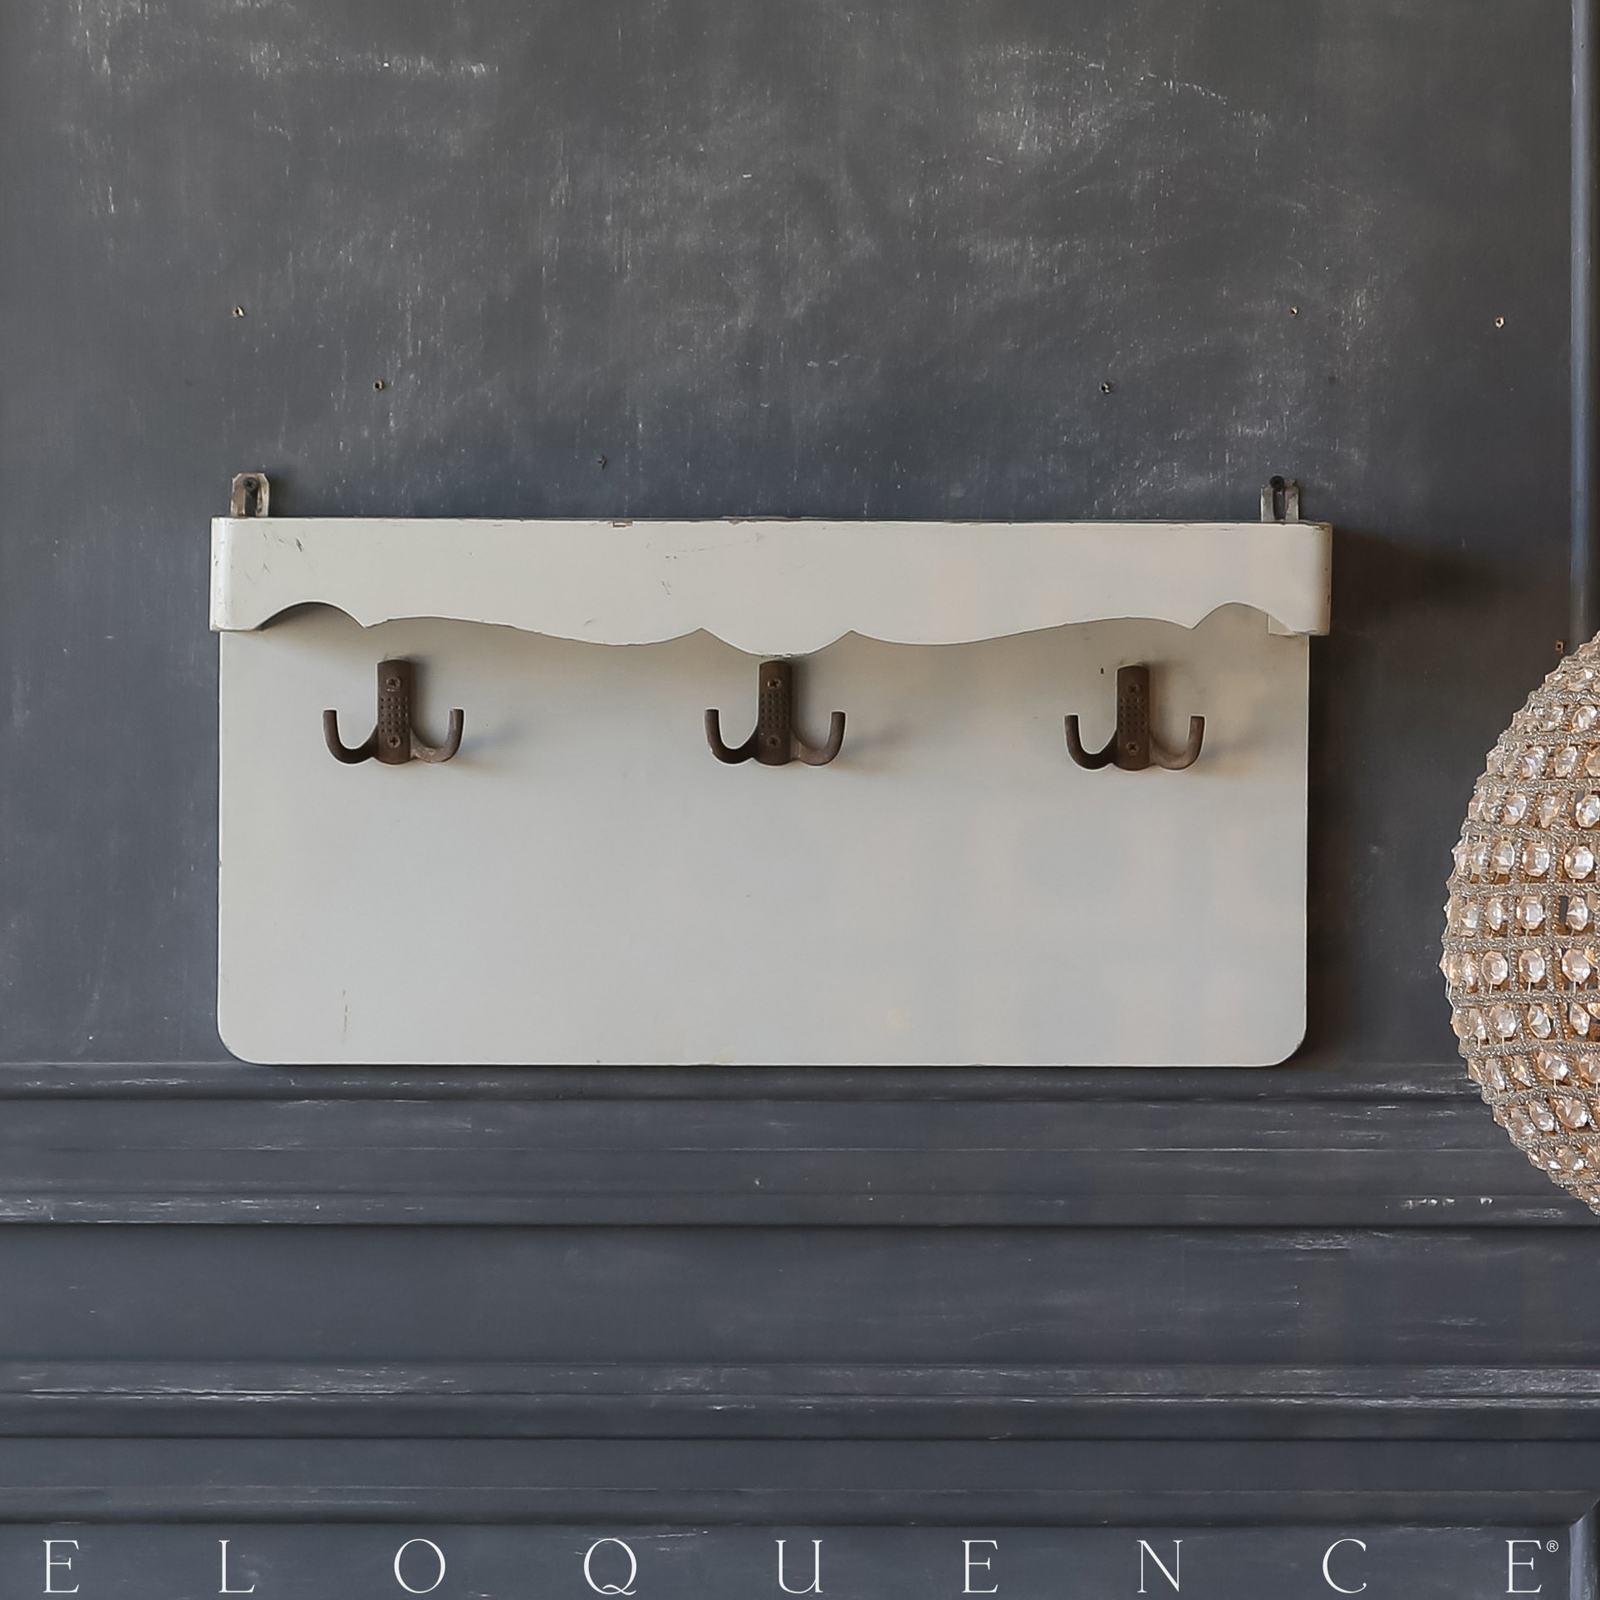 Eloquence® Vintage Wall Hanging Shelf: 1940